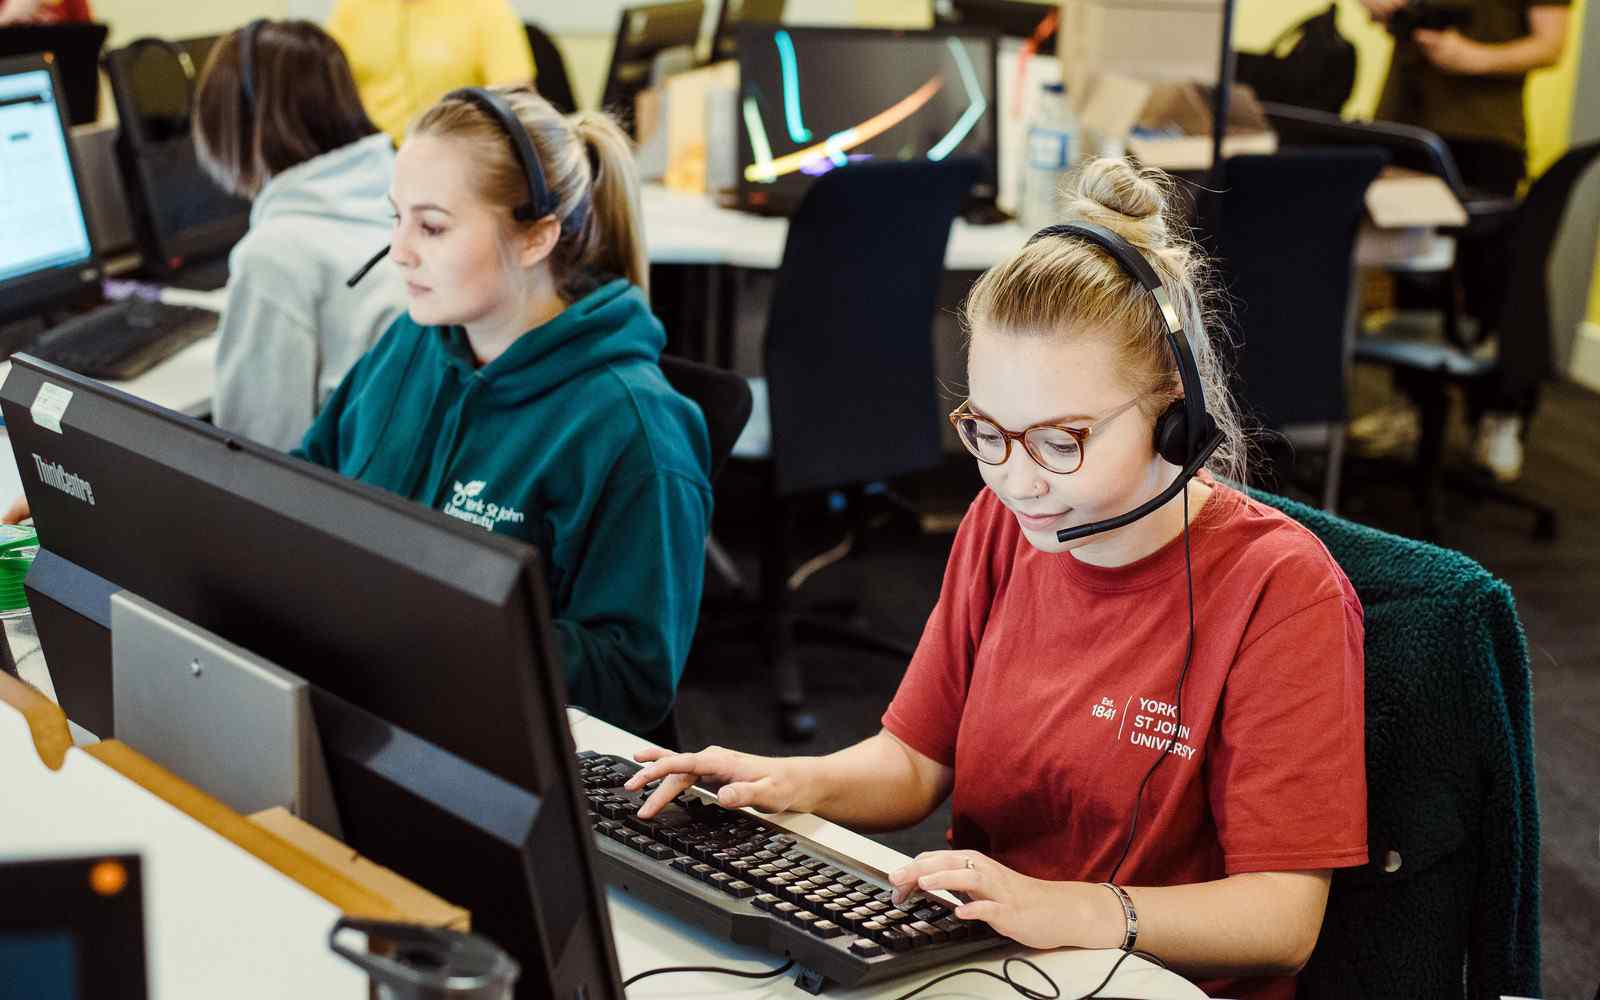 A call centre with 2 women at computers talking into headsets